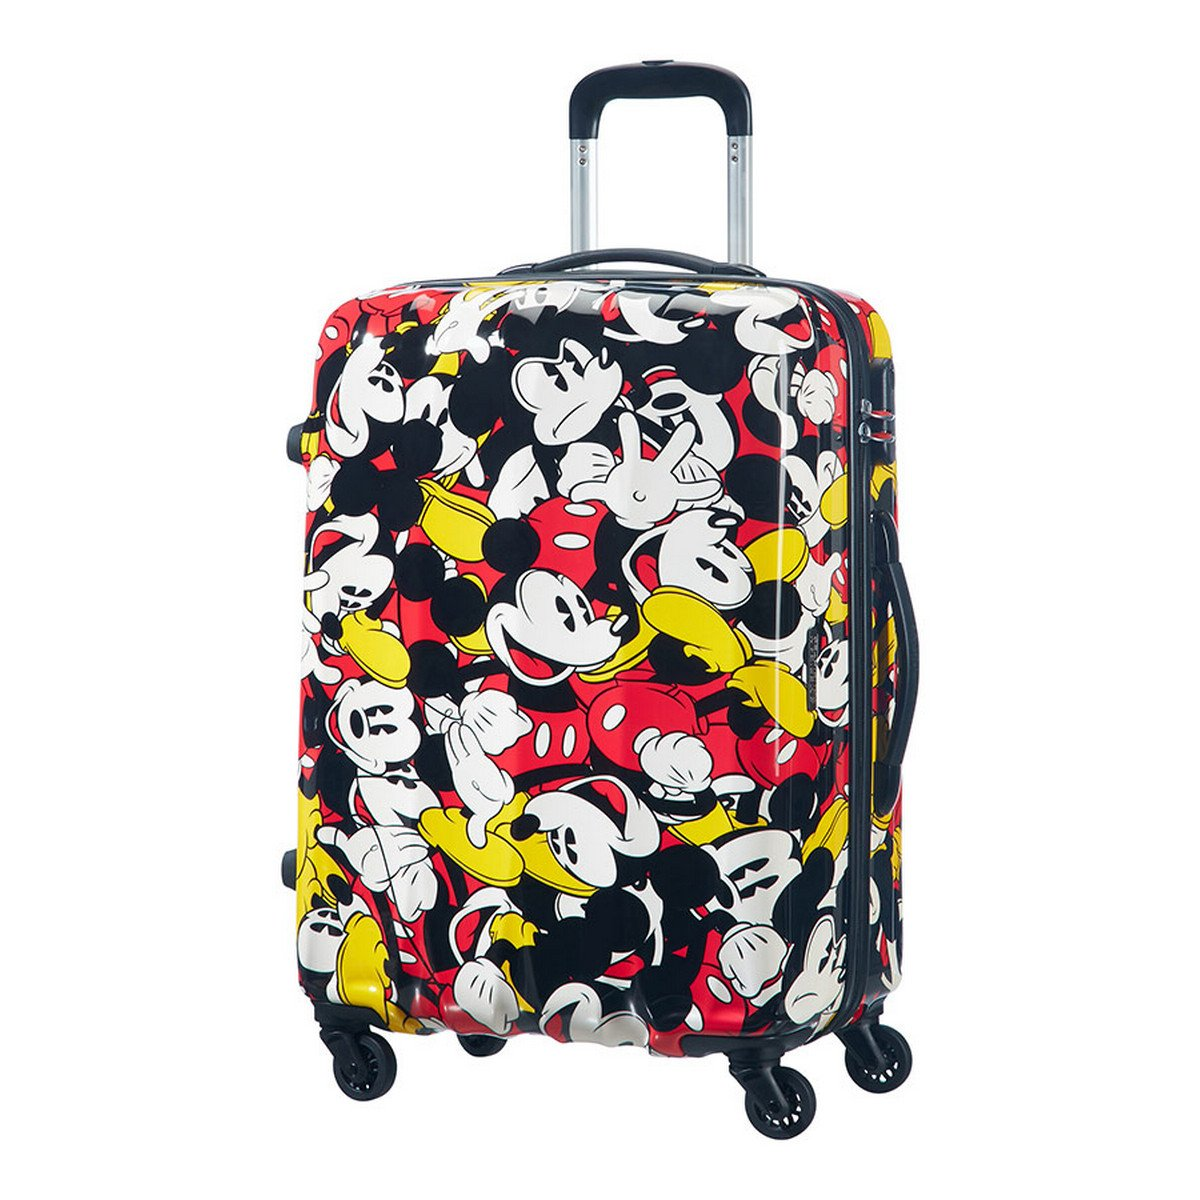 Samsonite American Tourister Disney Legends Spinner Maleta cm Litros Mickey Comics